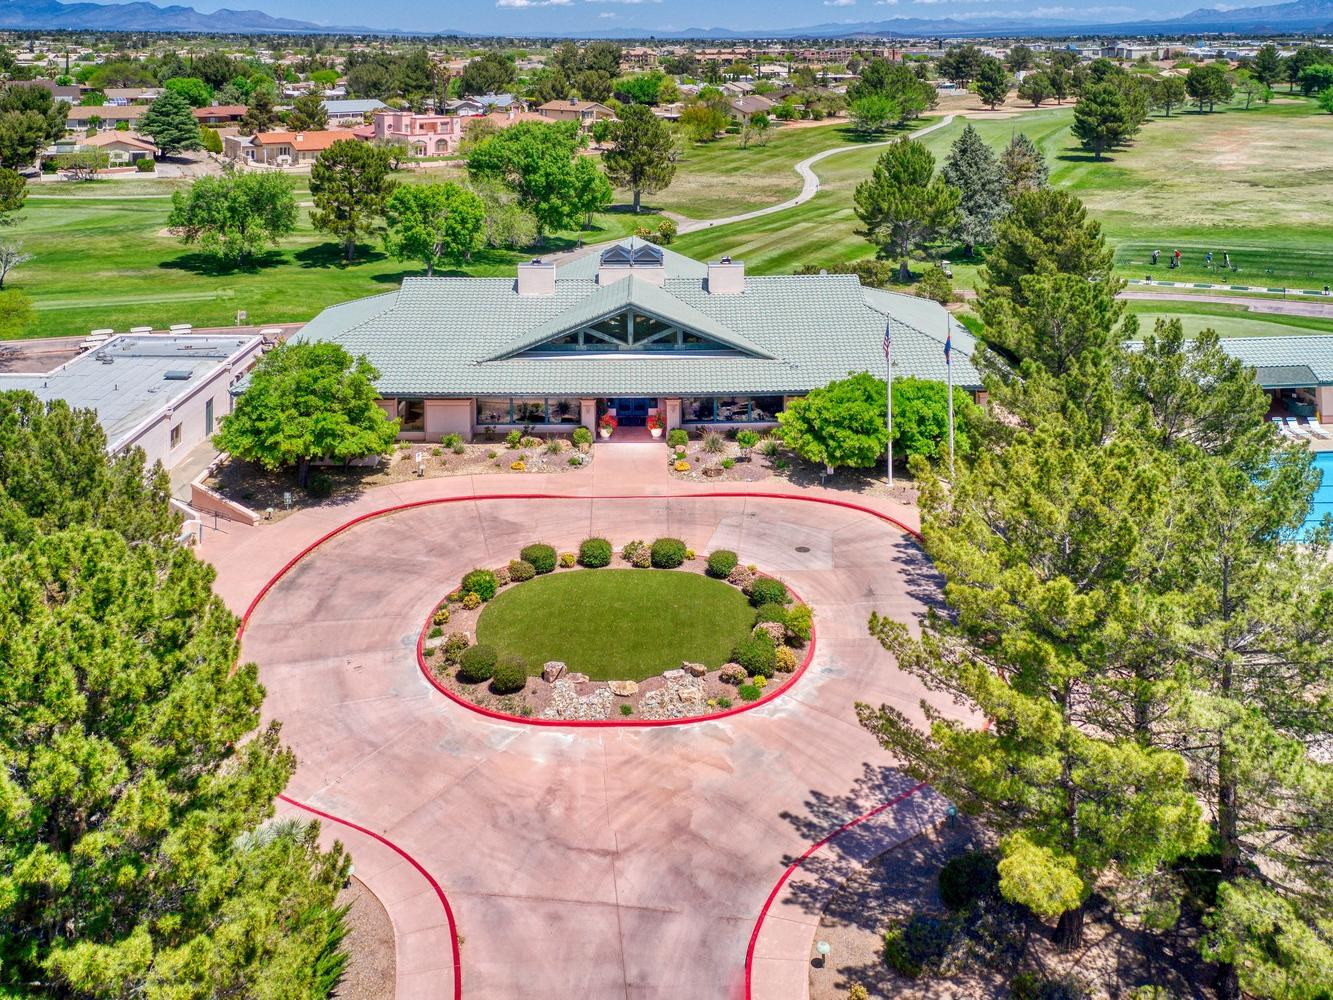 Drone photo of Pueblo del Sol golf course.